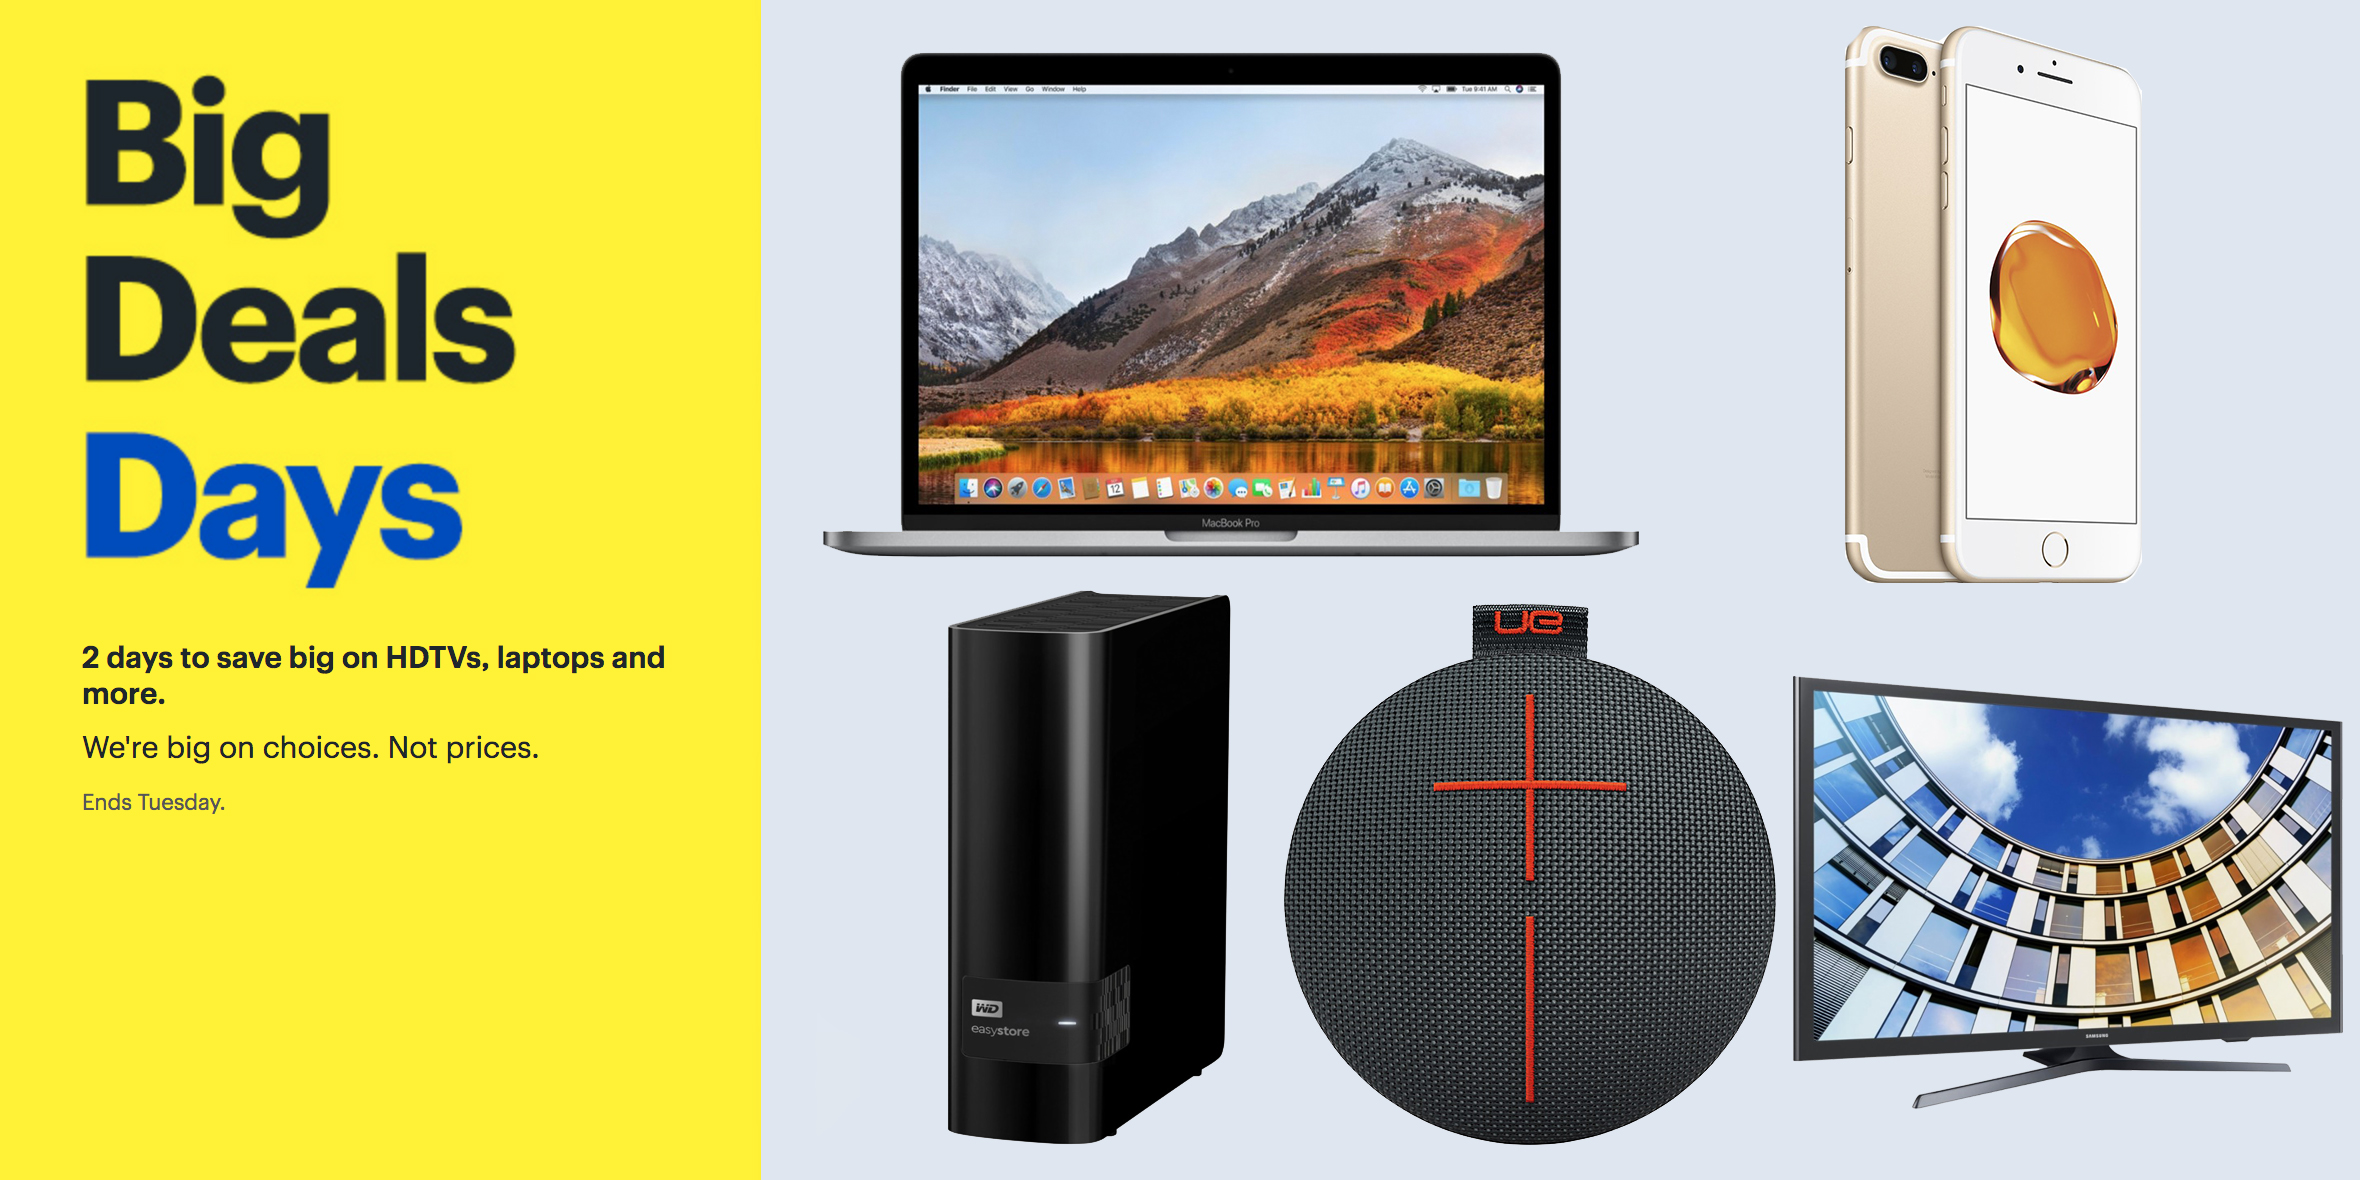 Best Buy 2 Day Sale Takes On Prime Day: $500 Off MacBooks, IPhone Deals,  TVs, More